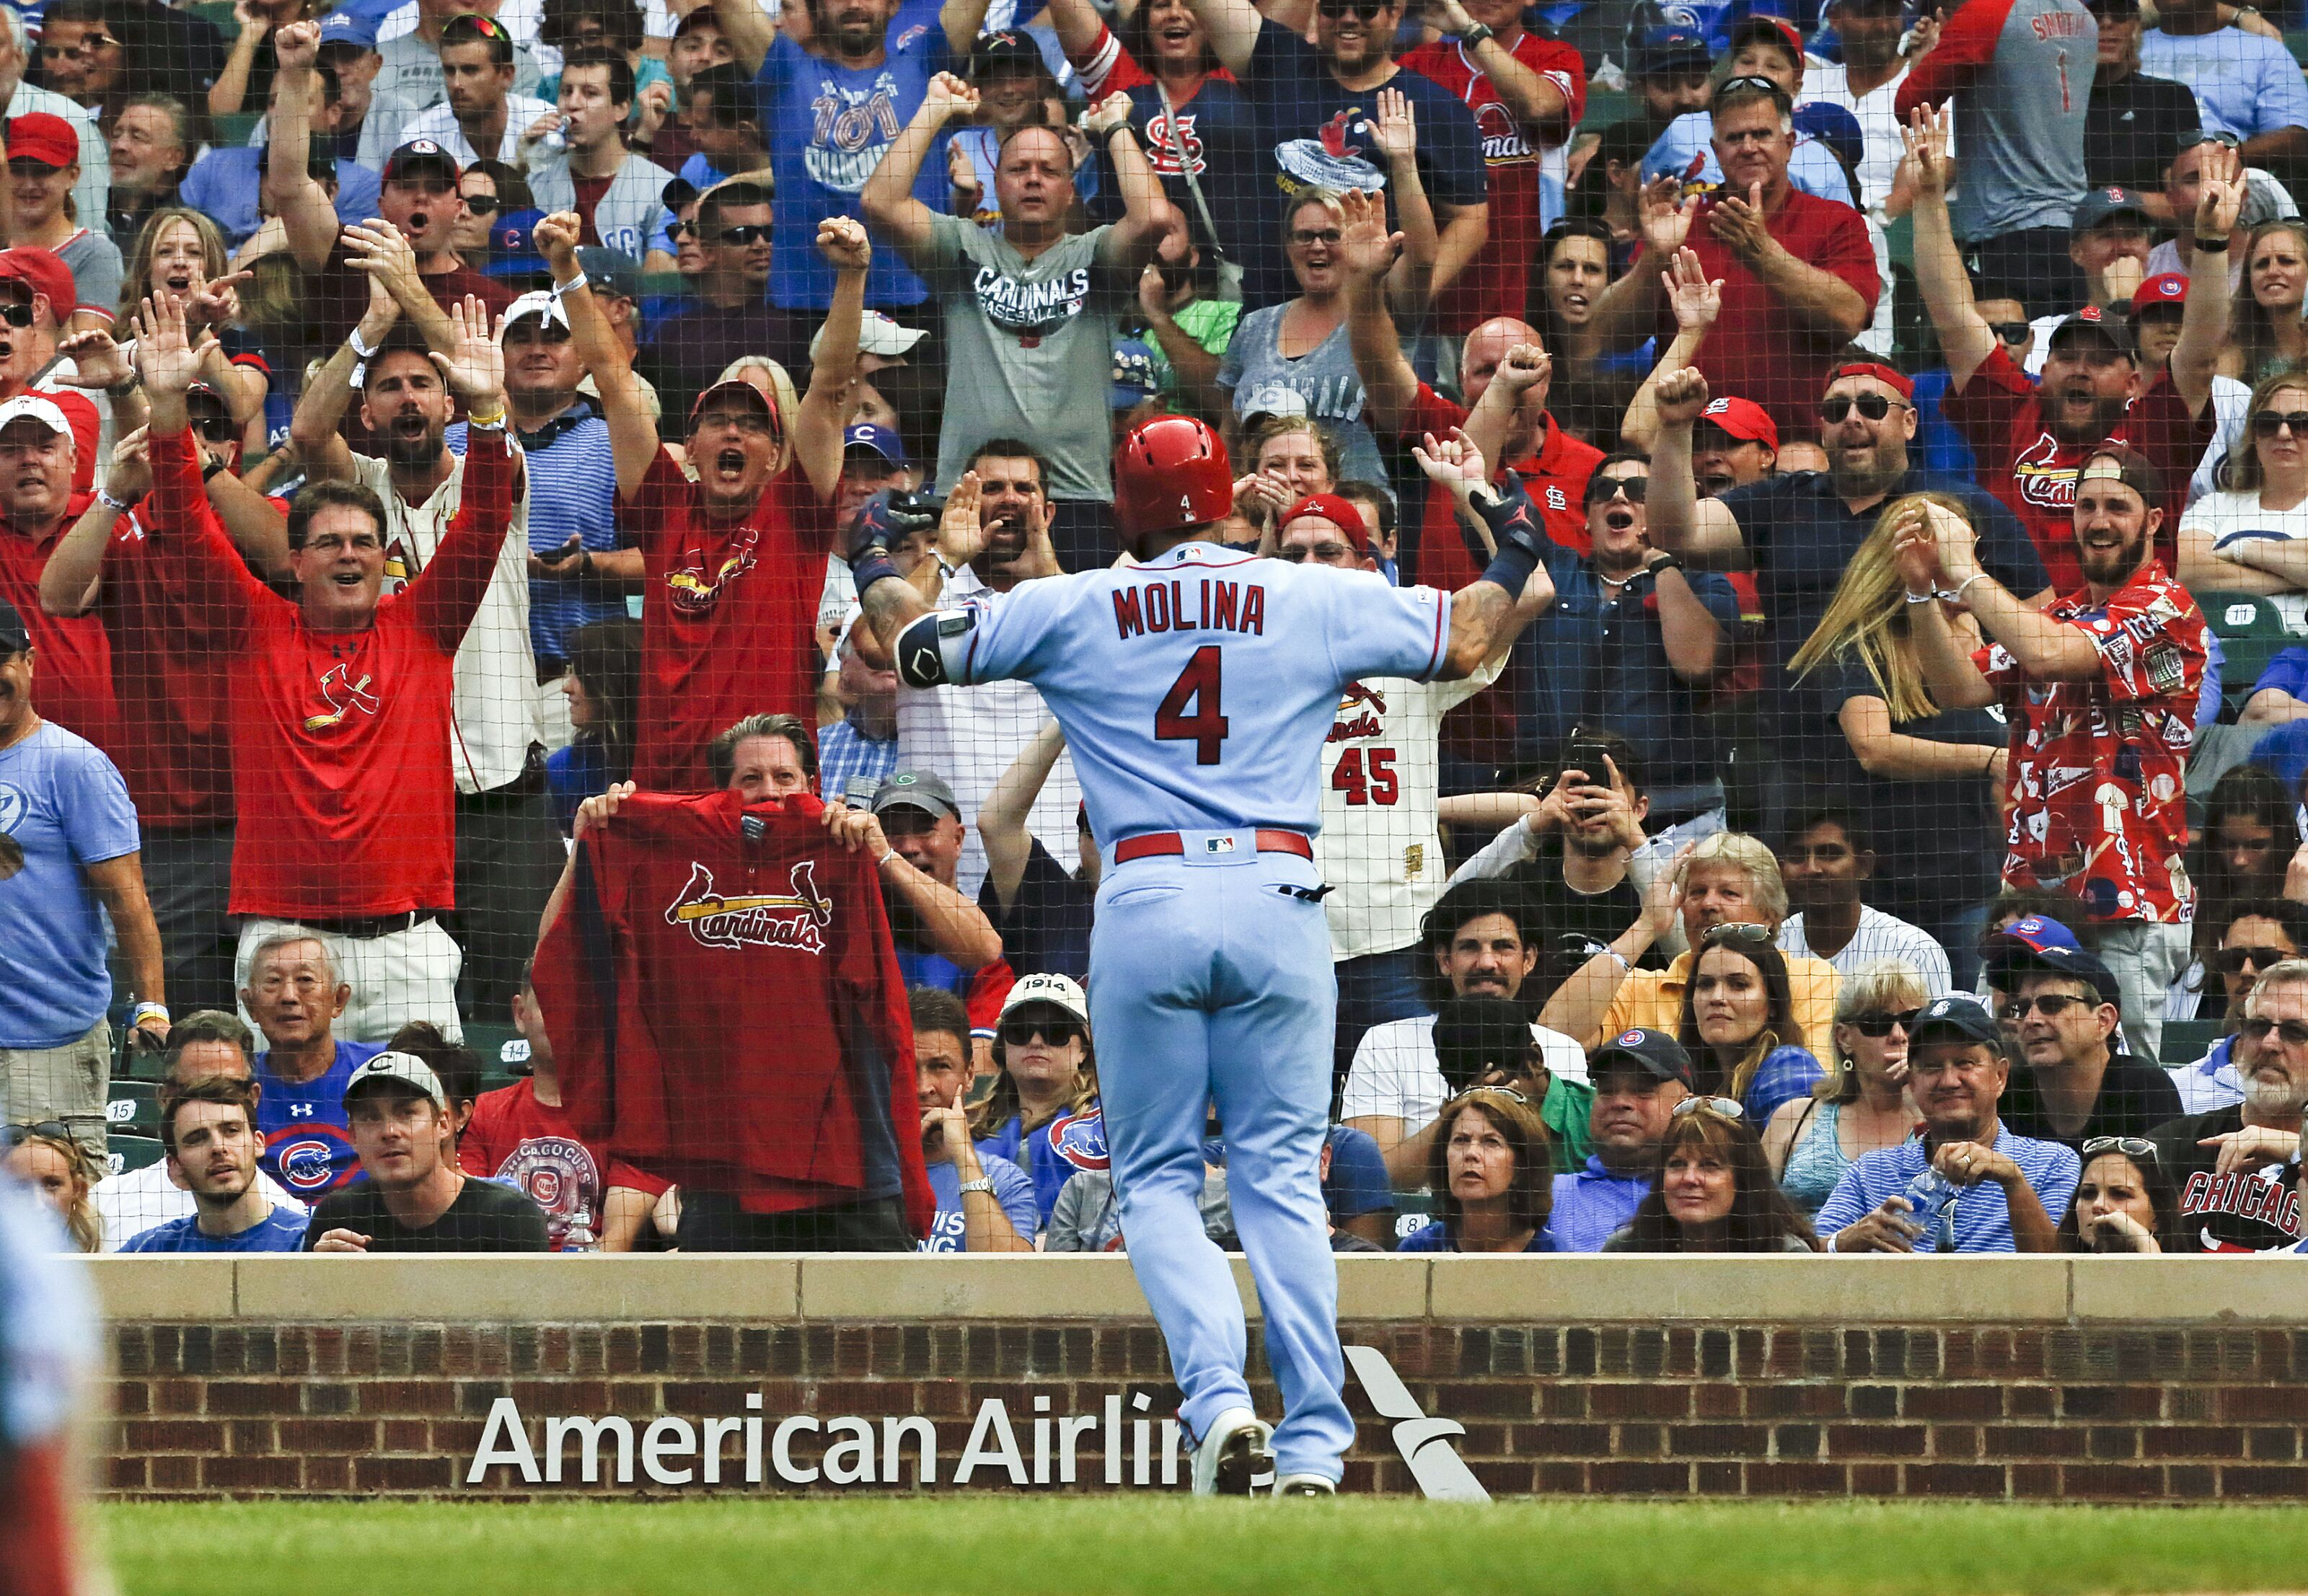 St. Louis Cardinals: Will the Cubs be off their A-game?